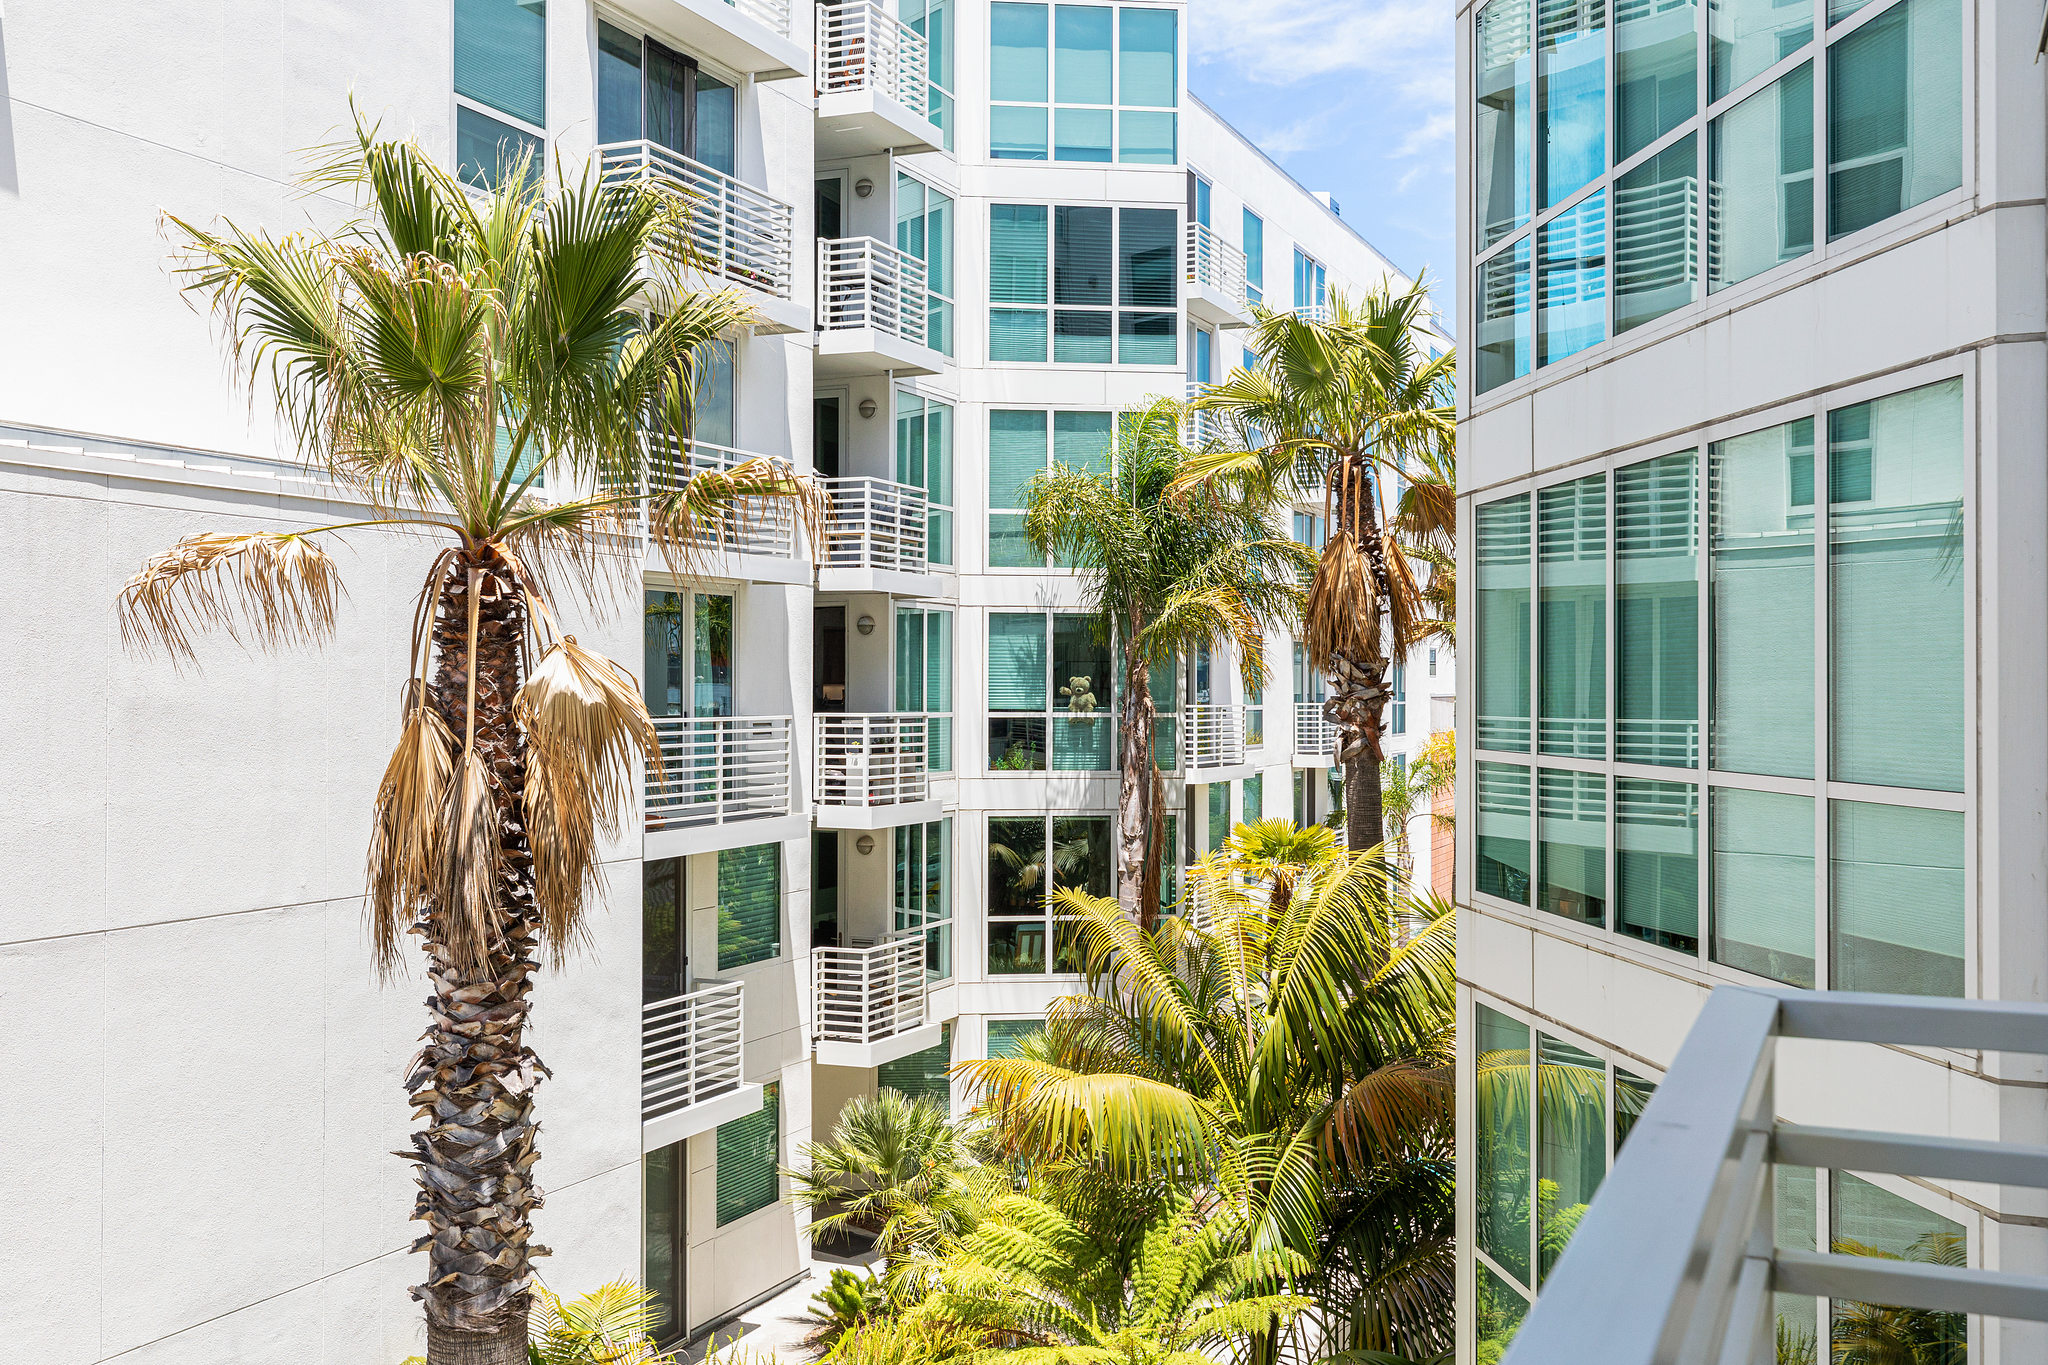 San Francisco Realty - Outside view of home with palm tree